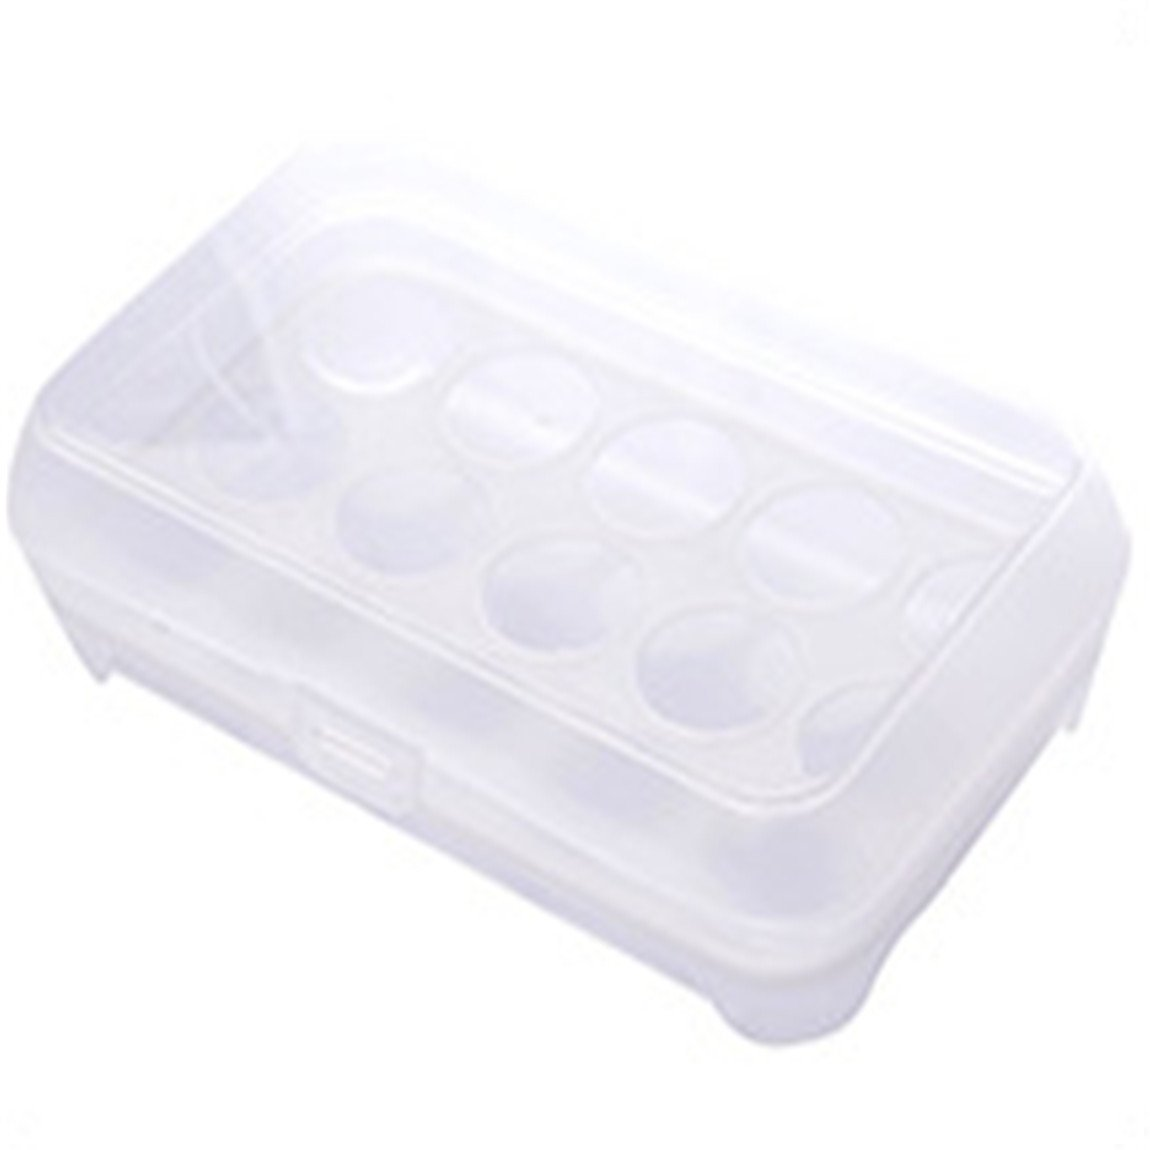 Ancdream Plastic Egg Storage Container / Box, Refrigeator Safe - for 15 Eggs with Lid - Blue Color AW0004